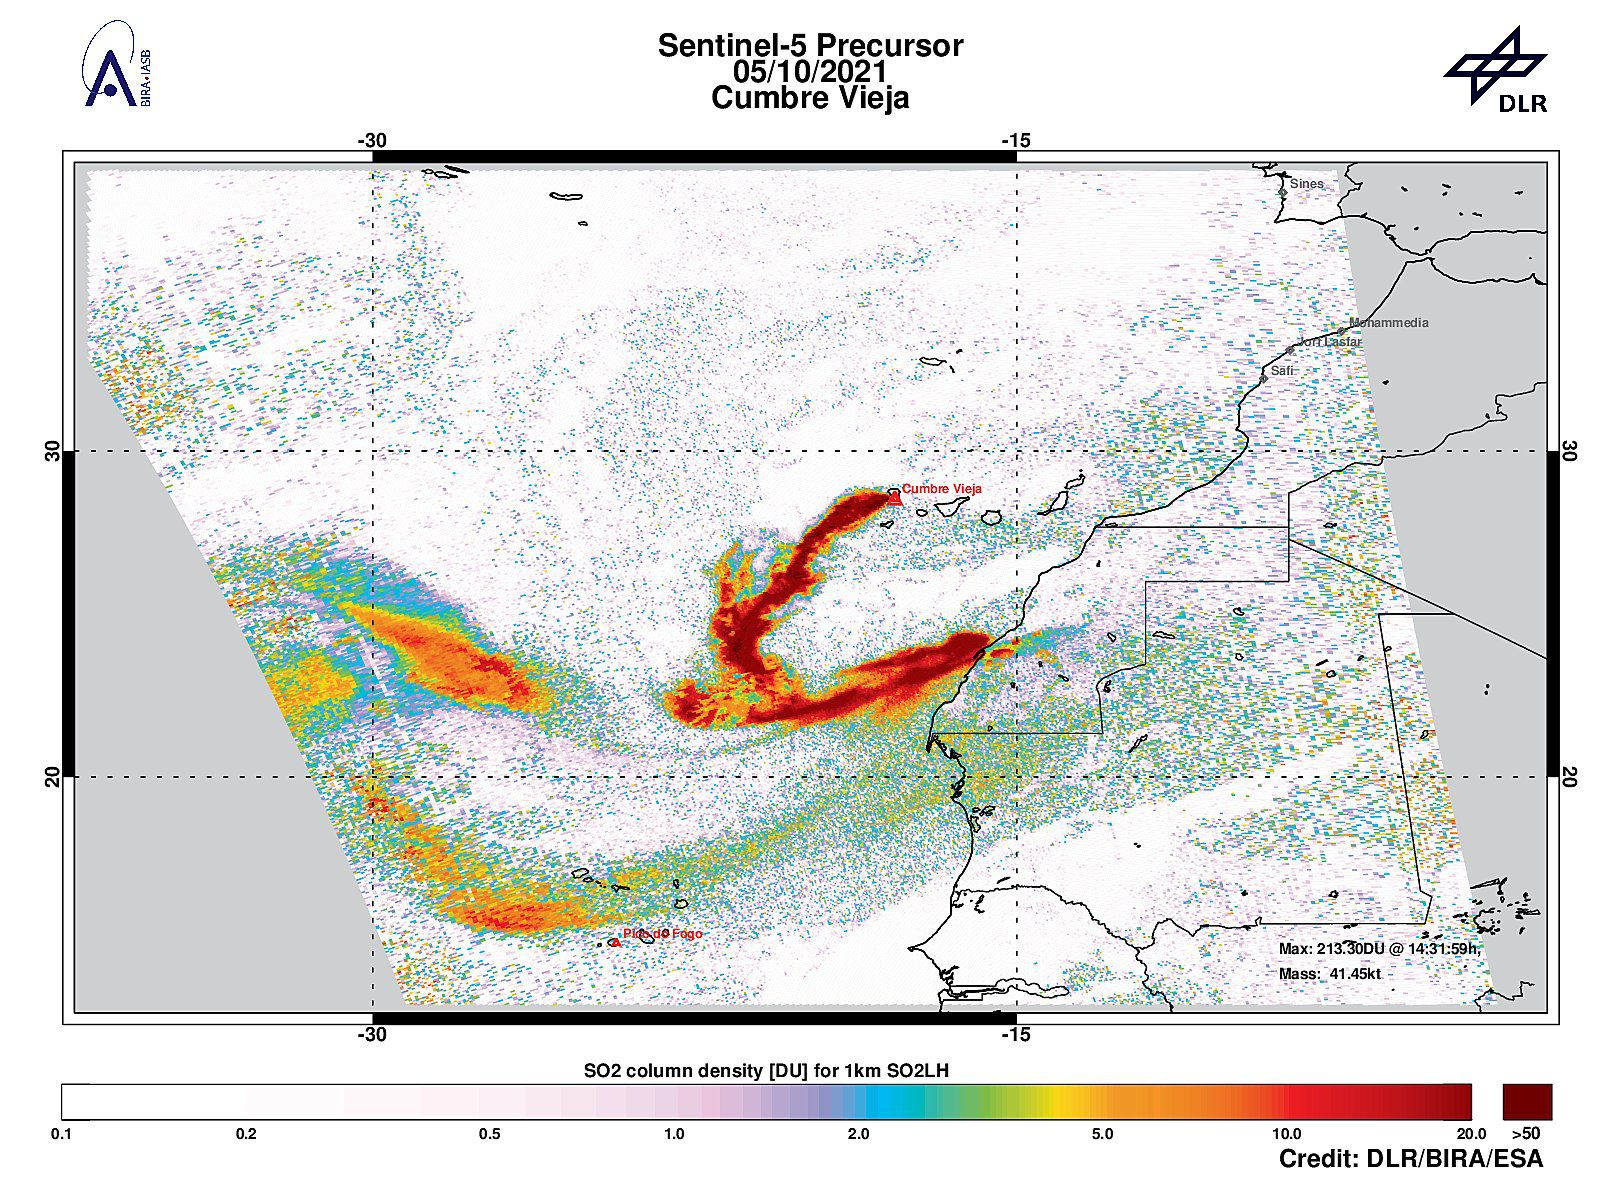 La Palma - strong SO2 signal at a distance of 15.0 km at CumbreVieja with 56.21DU of SO2 -. Weight estimated at less than 300 km 41.5 kt. - image Sentinel-5P / Tropomi 05.10.2021 - Doc. DLR / BIRA / ESA